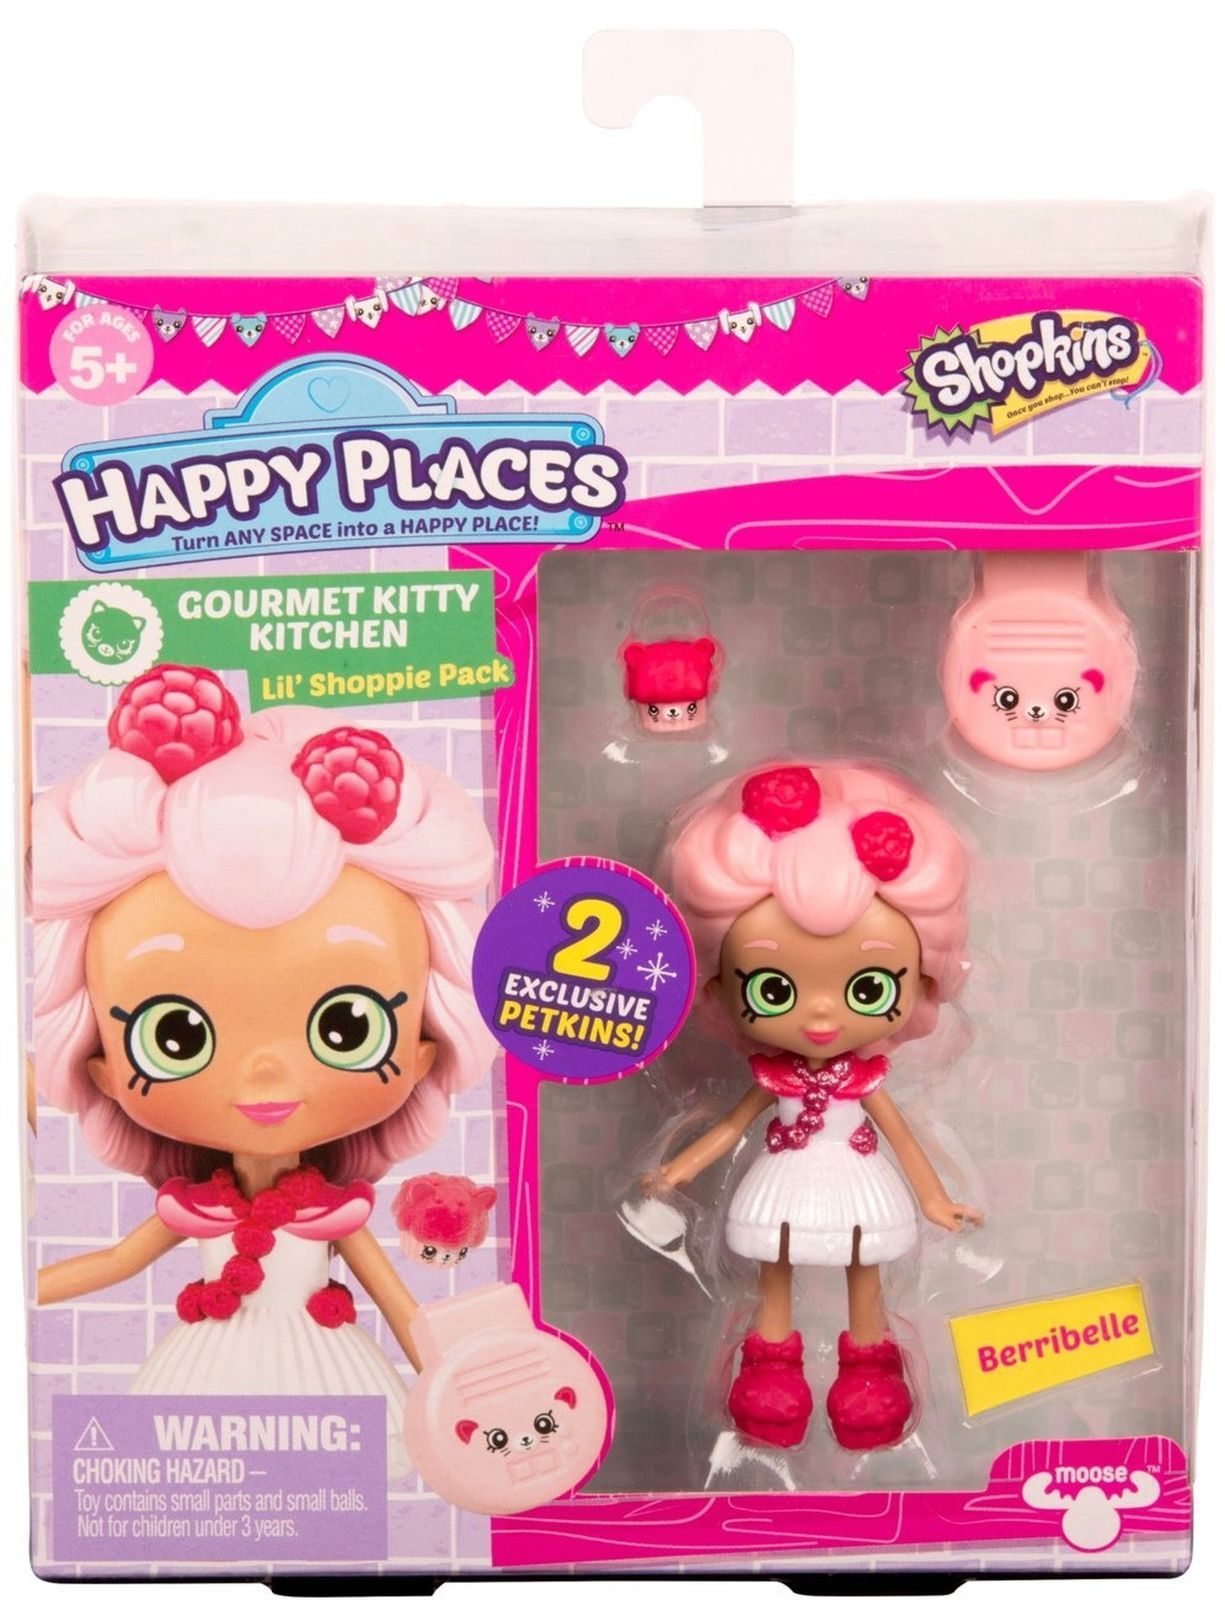 Happy places shopkins doll single pack berribelle new bryleigh